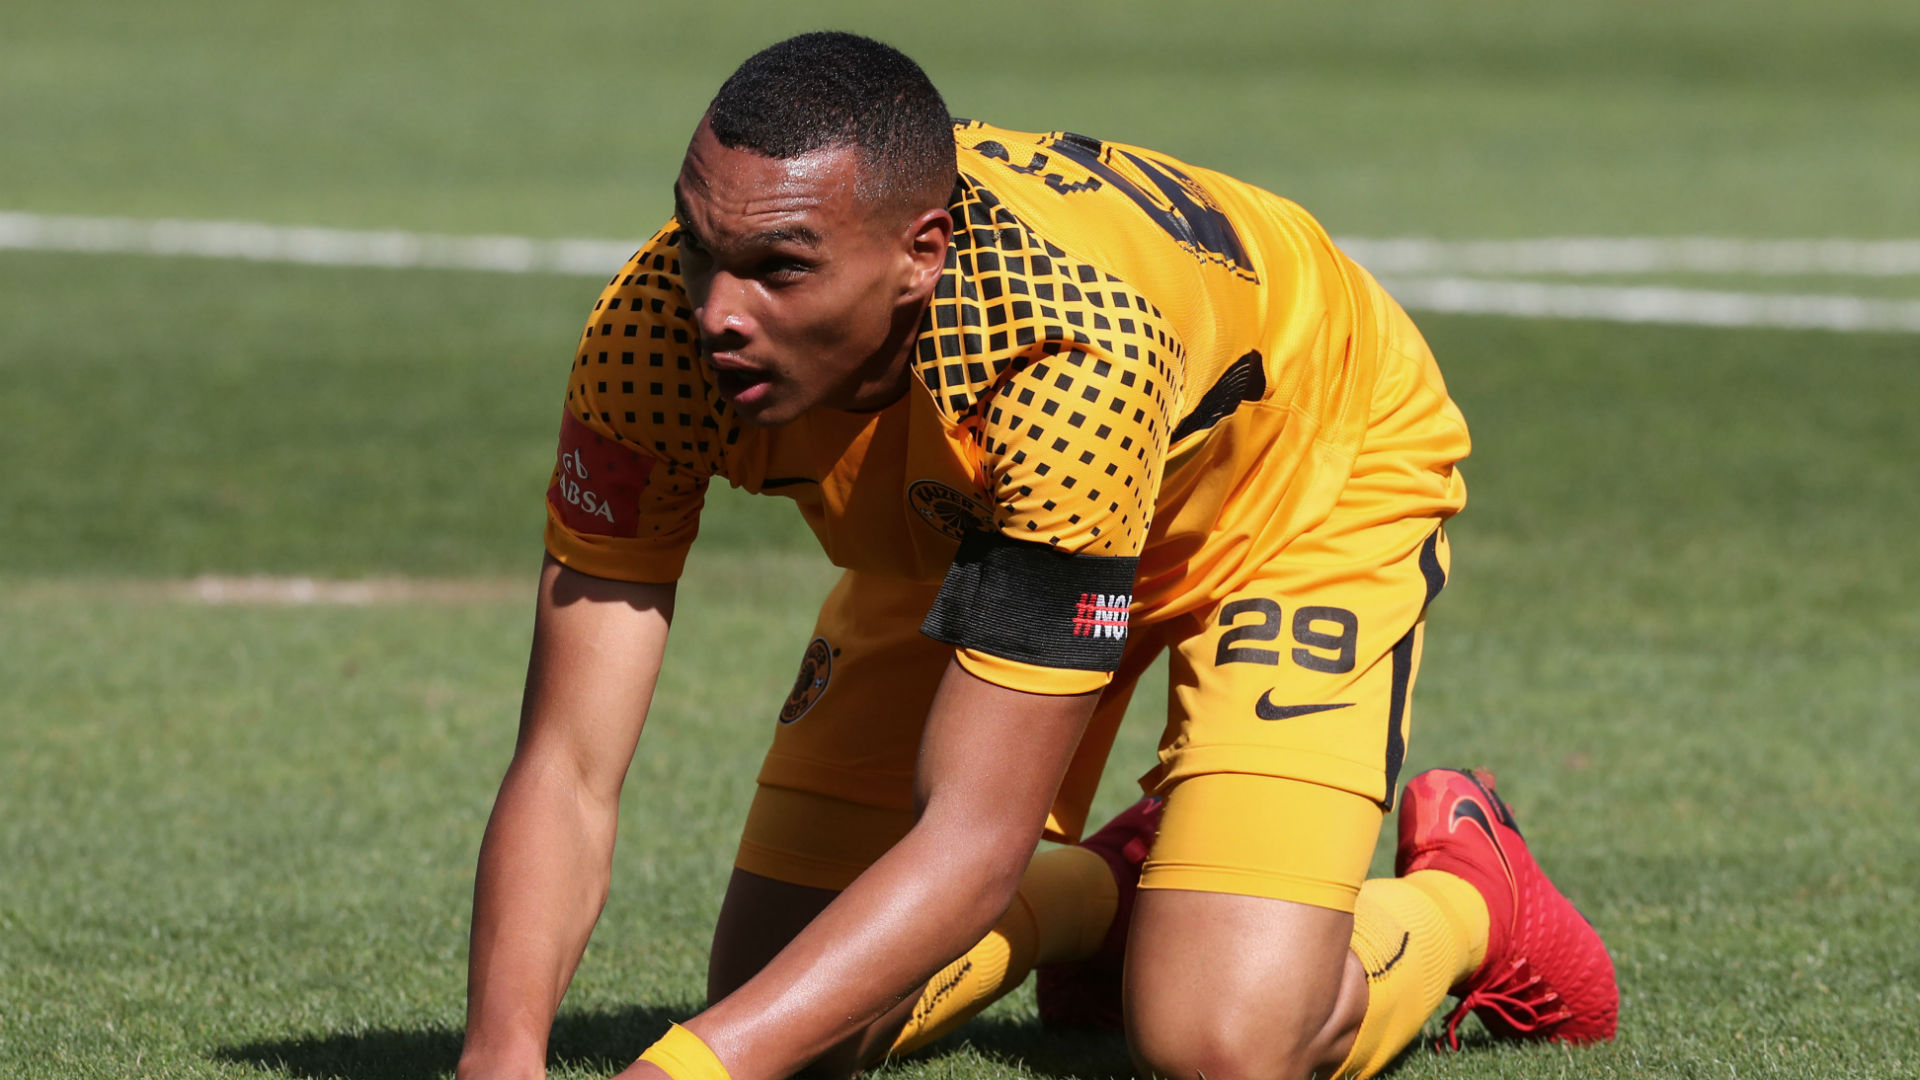 Ryan Moon, Kaizer Chiefs